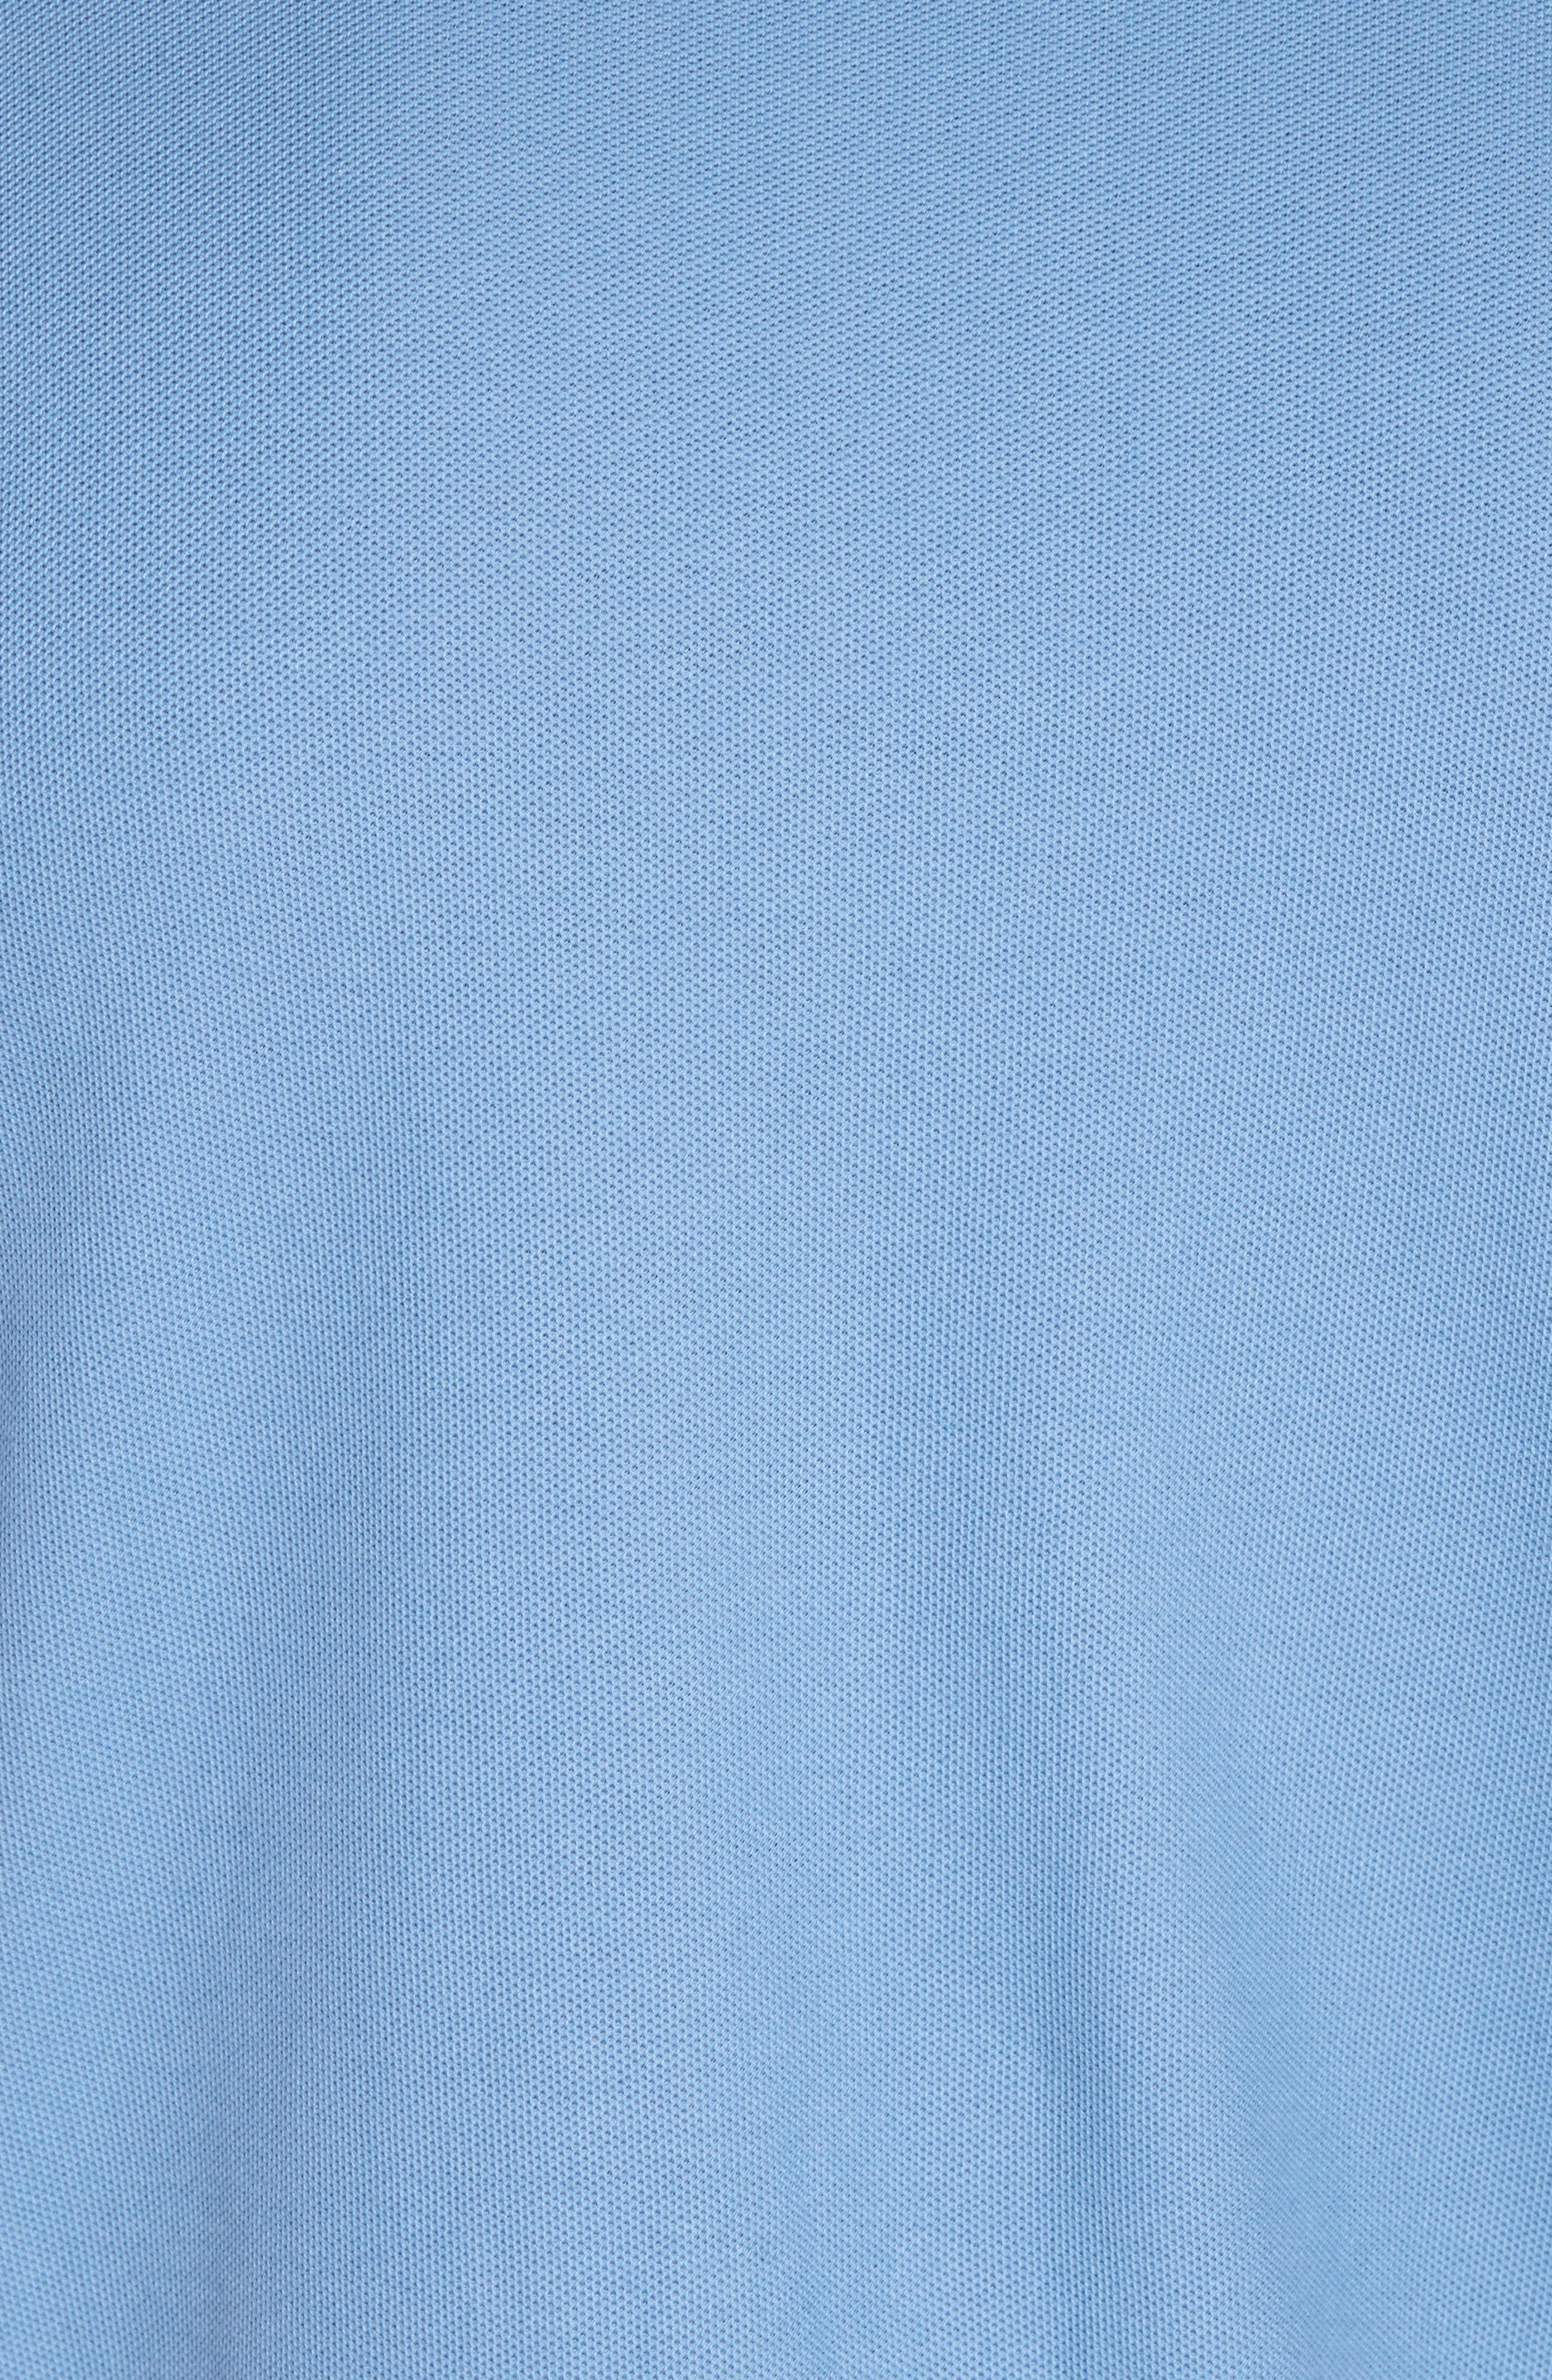 Belwe Relaxed Fit Piqué Polo,                             Alternate thumbnail 5, color,                             Railroad Blue